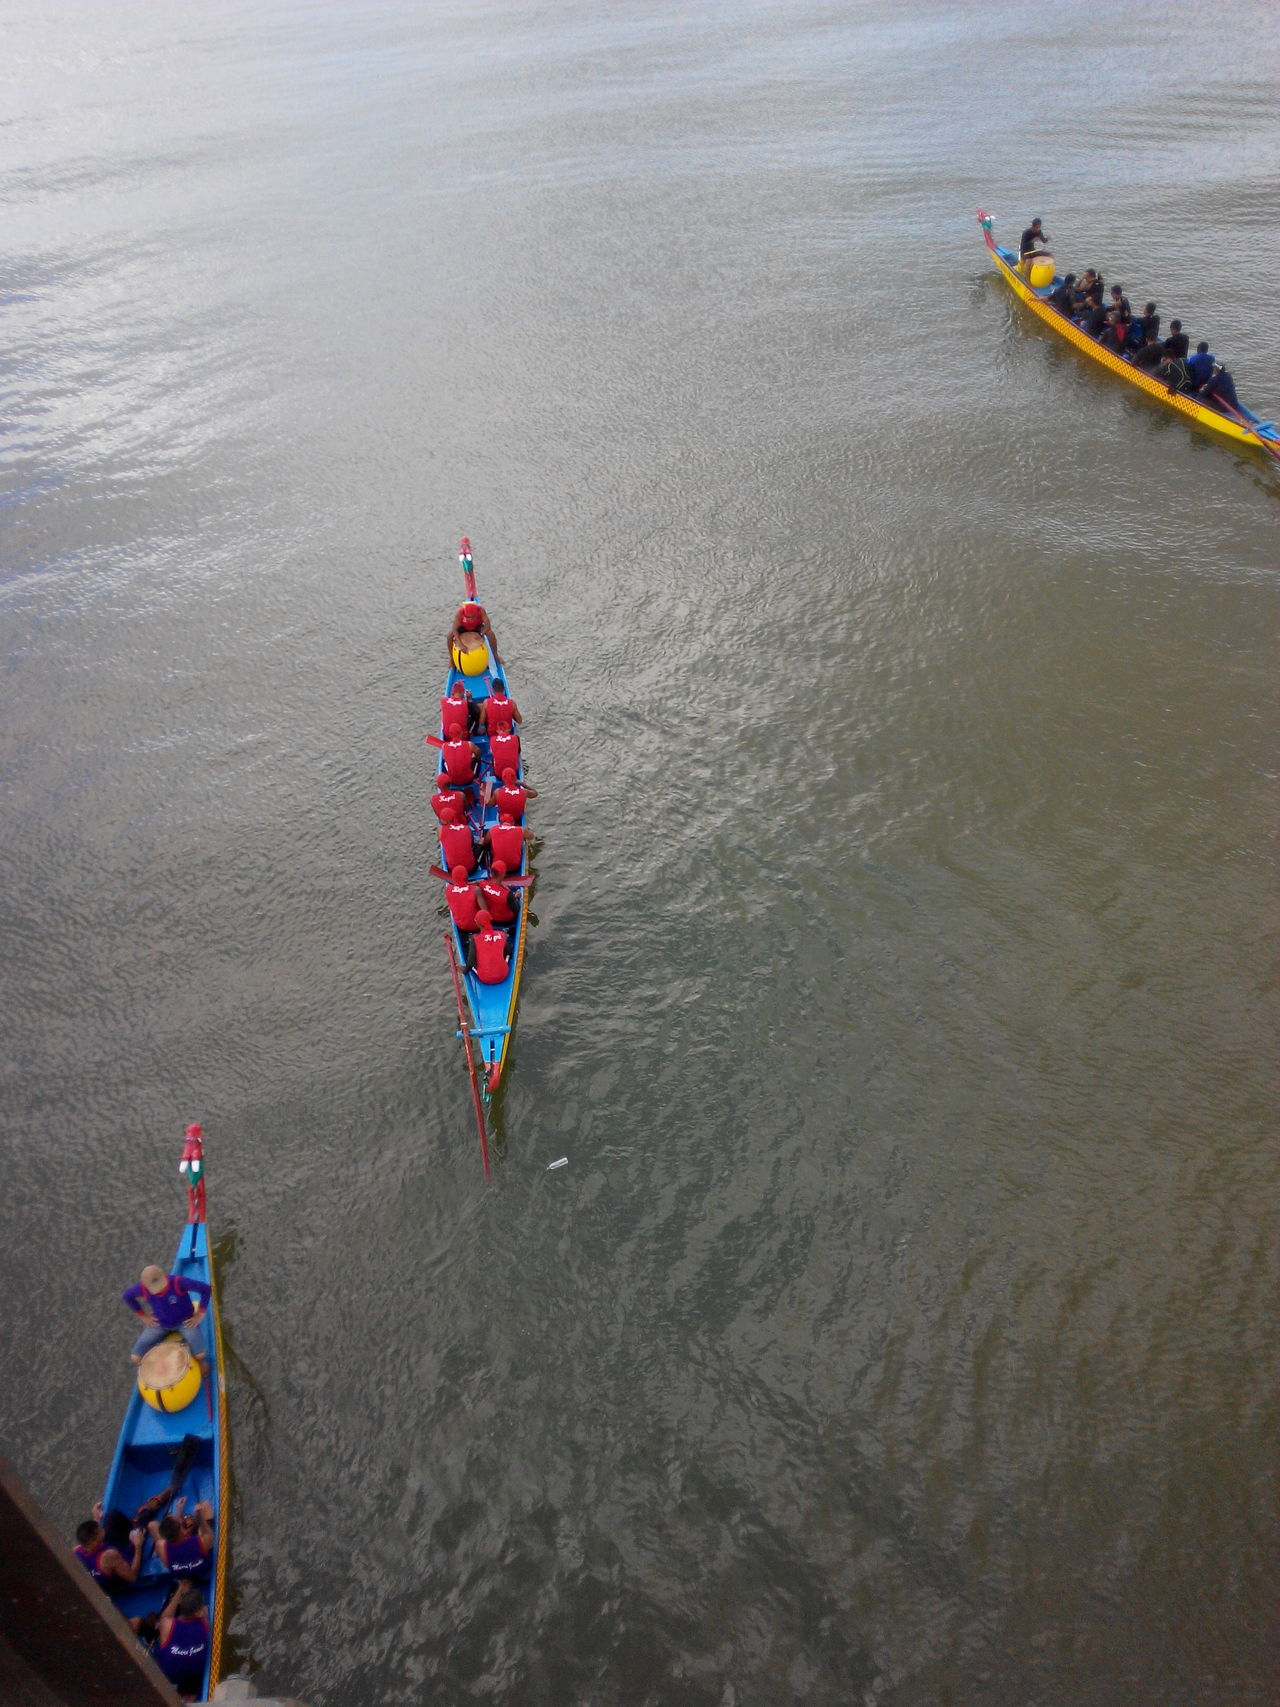 Dragon boats RePicture Challenge